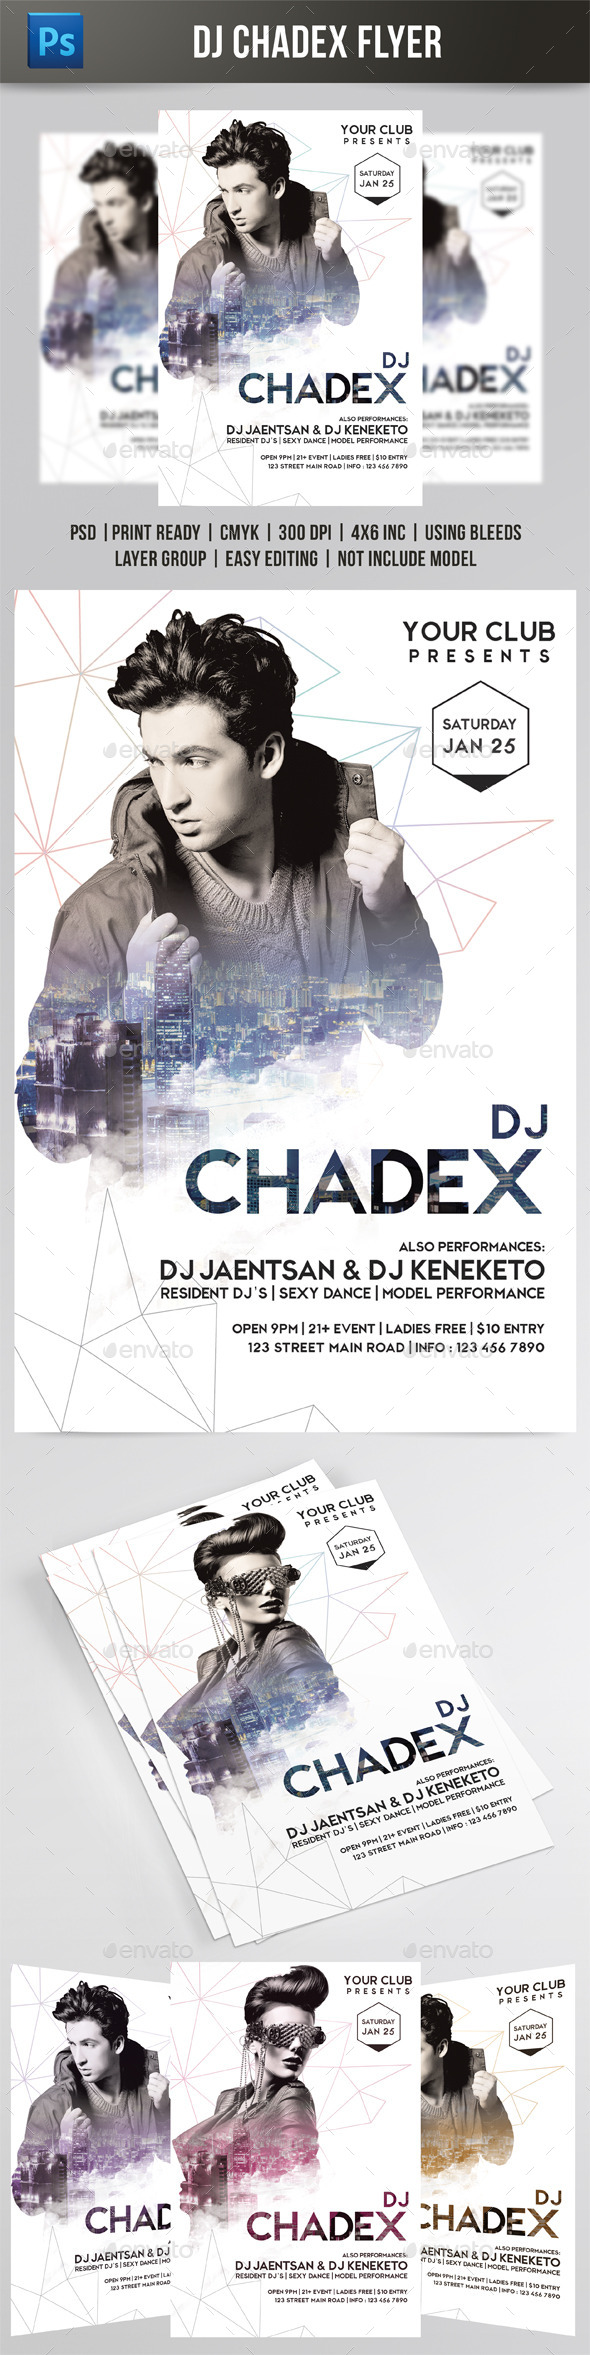 GraphicRiver DJ Chadex Flyer 9788994